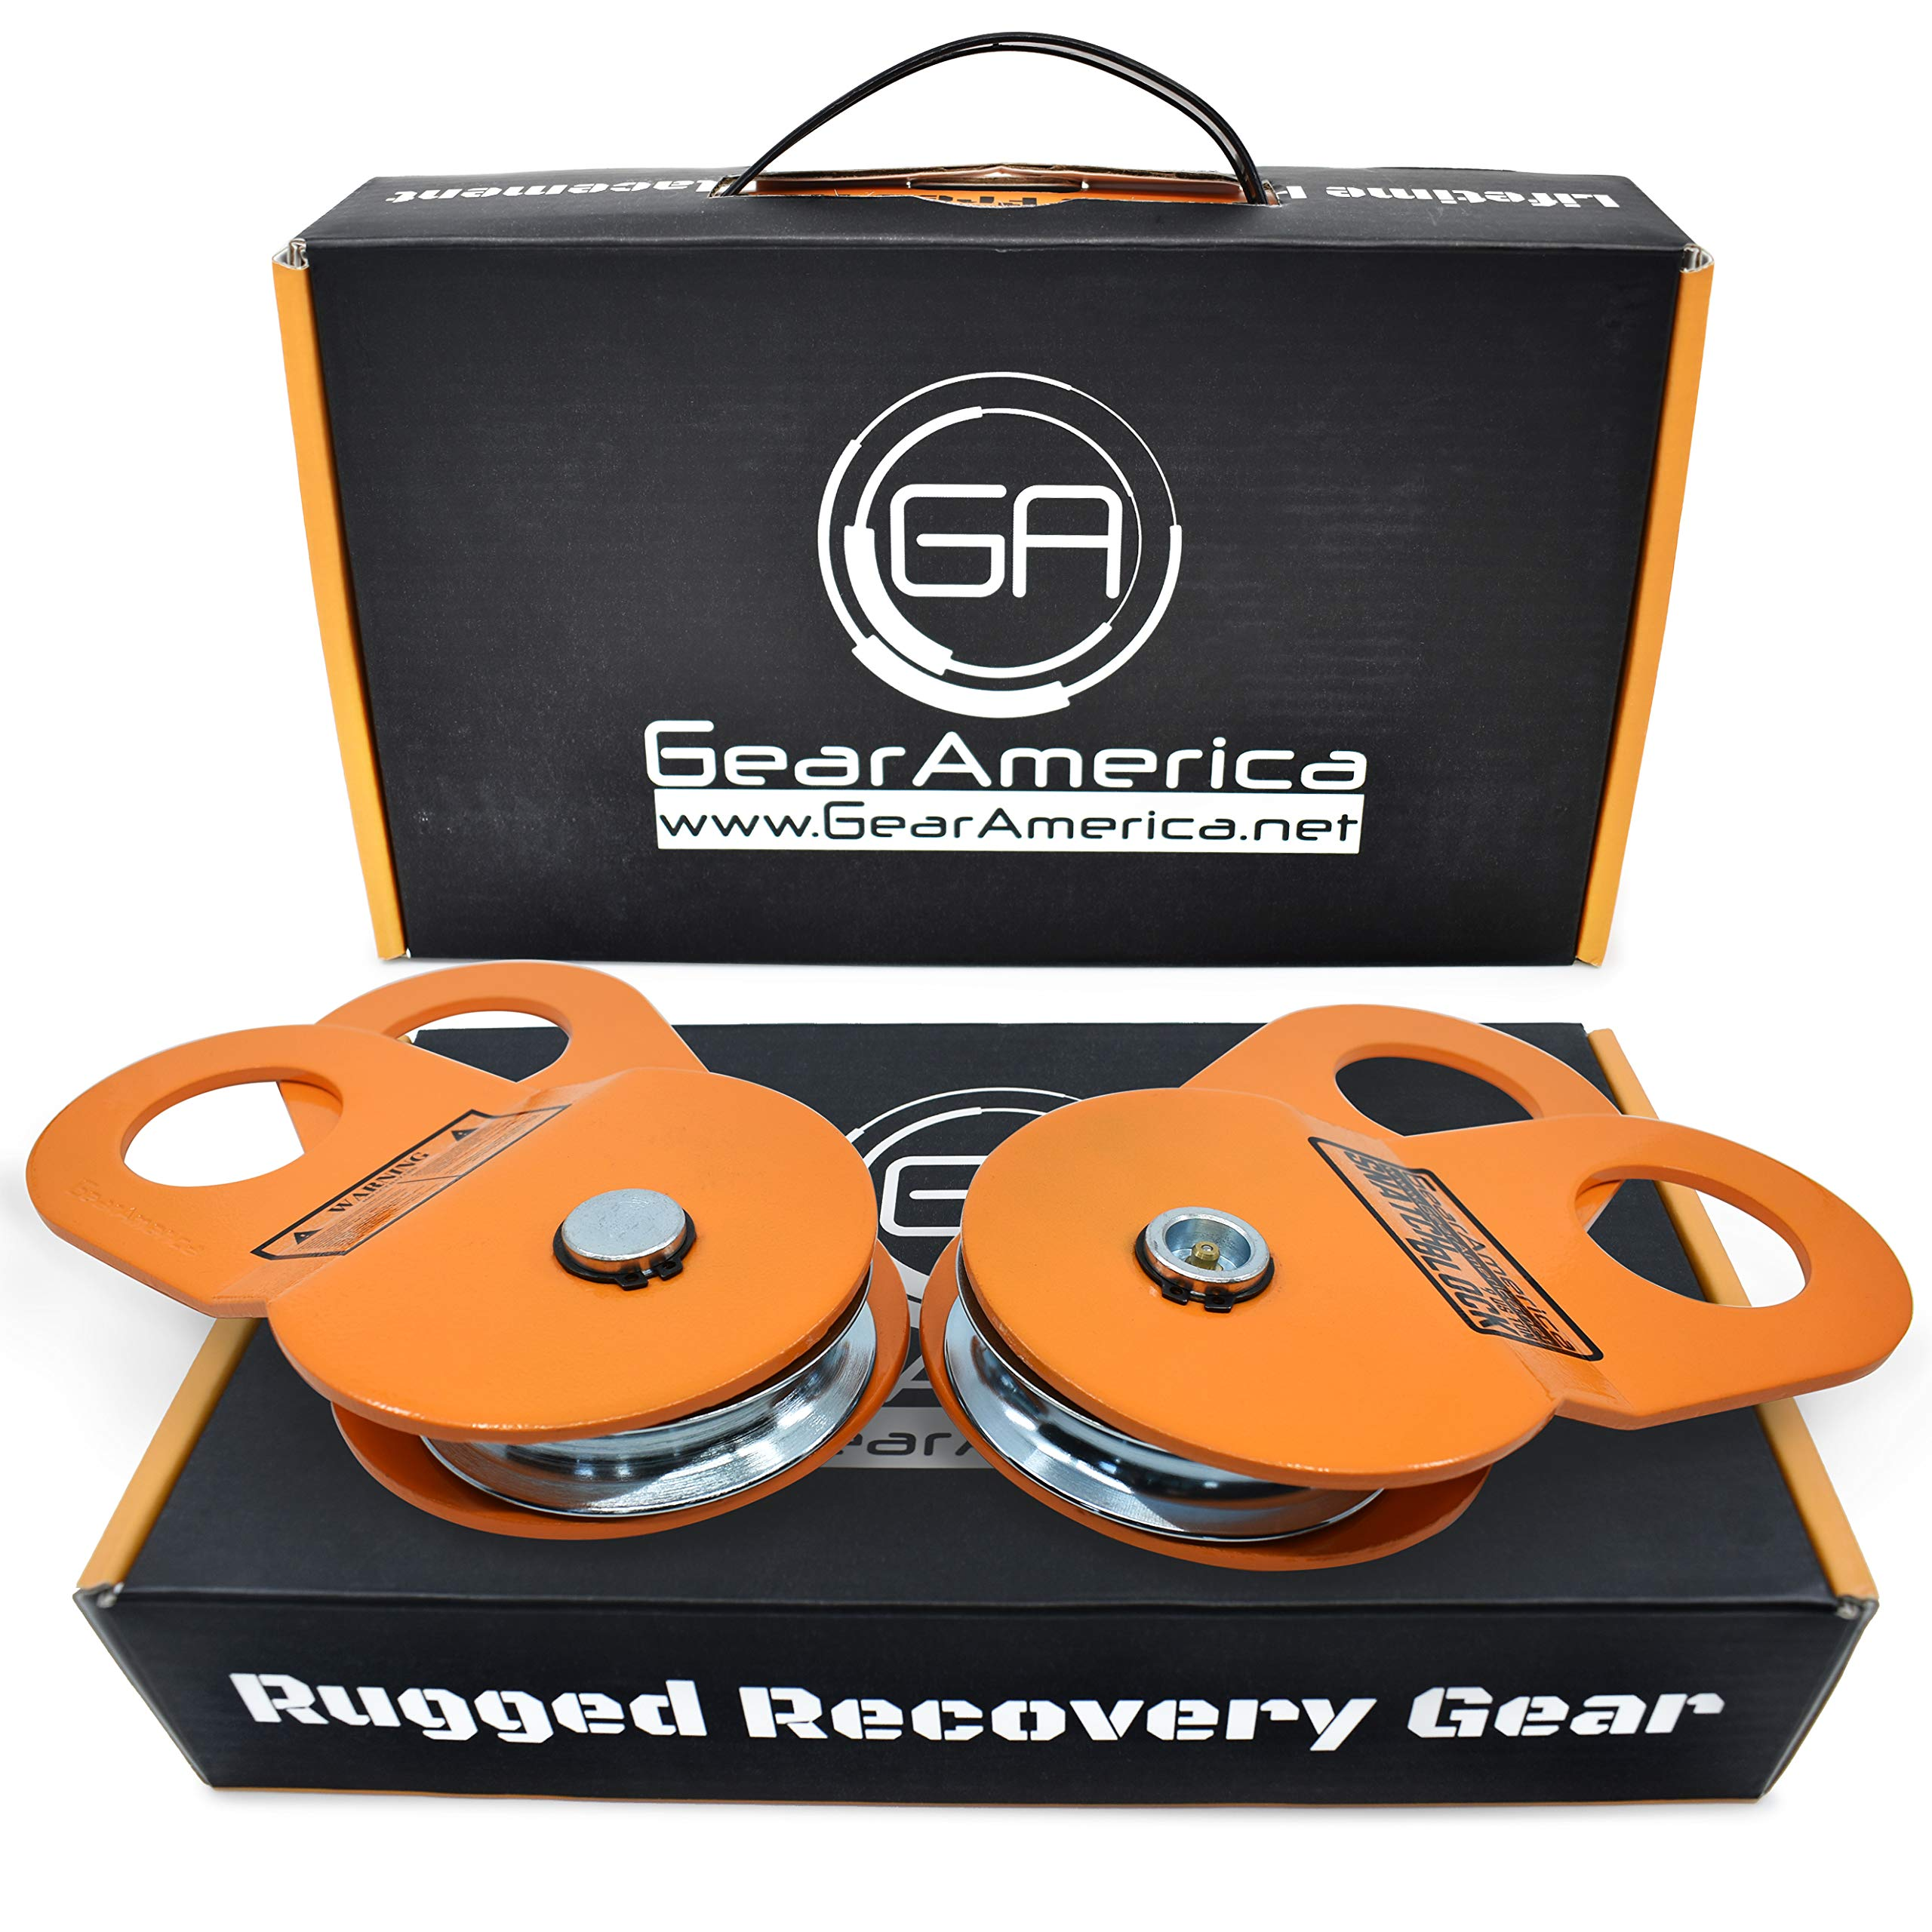 GearAmerica (2PK) Snatch Blocks 9 Ton | Heavy Duty Winch Pulley System for Synthetic Rope or Steel Cable | Triple Winch Capacity, Extend Life, Control Direction of Pull | Off-Road Recovery Accessory